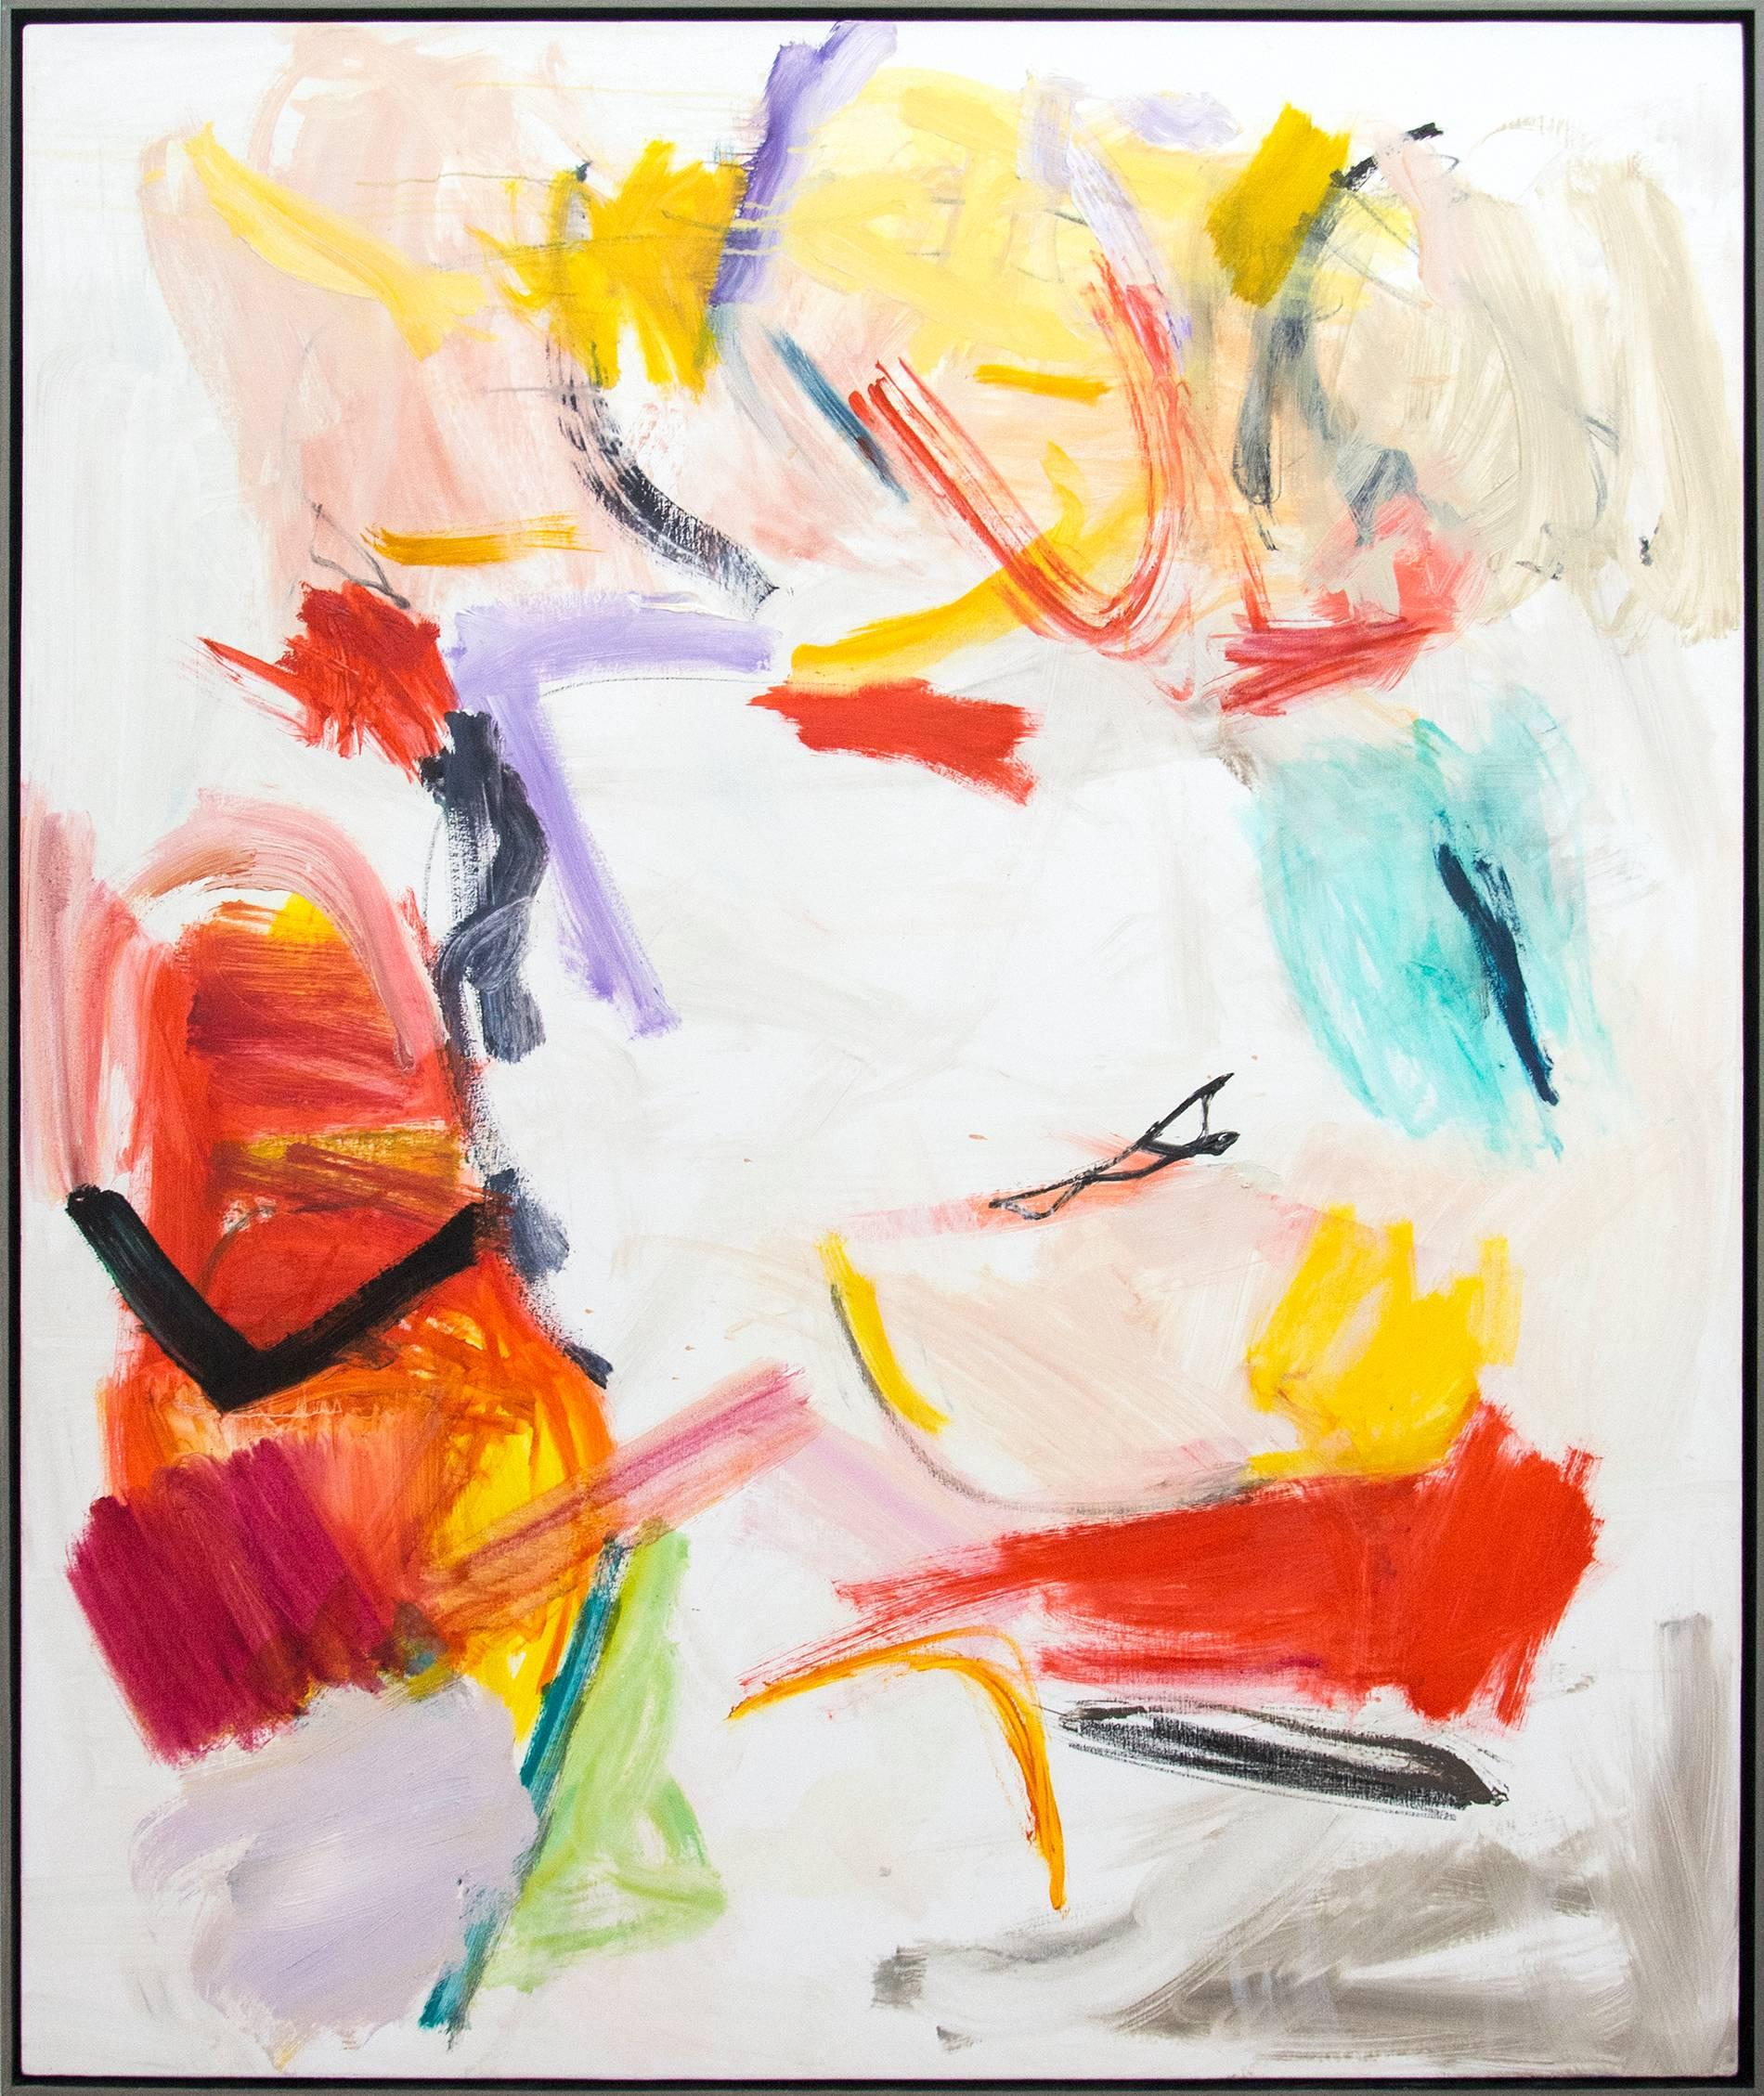 Kairoi No 43 - large, vibrant, colourful, gestural abstract, oil on canvas